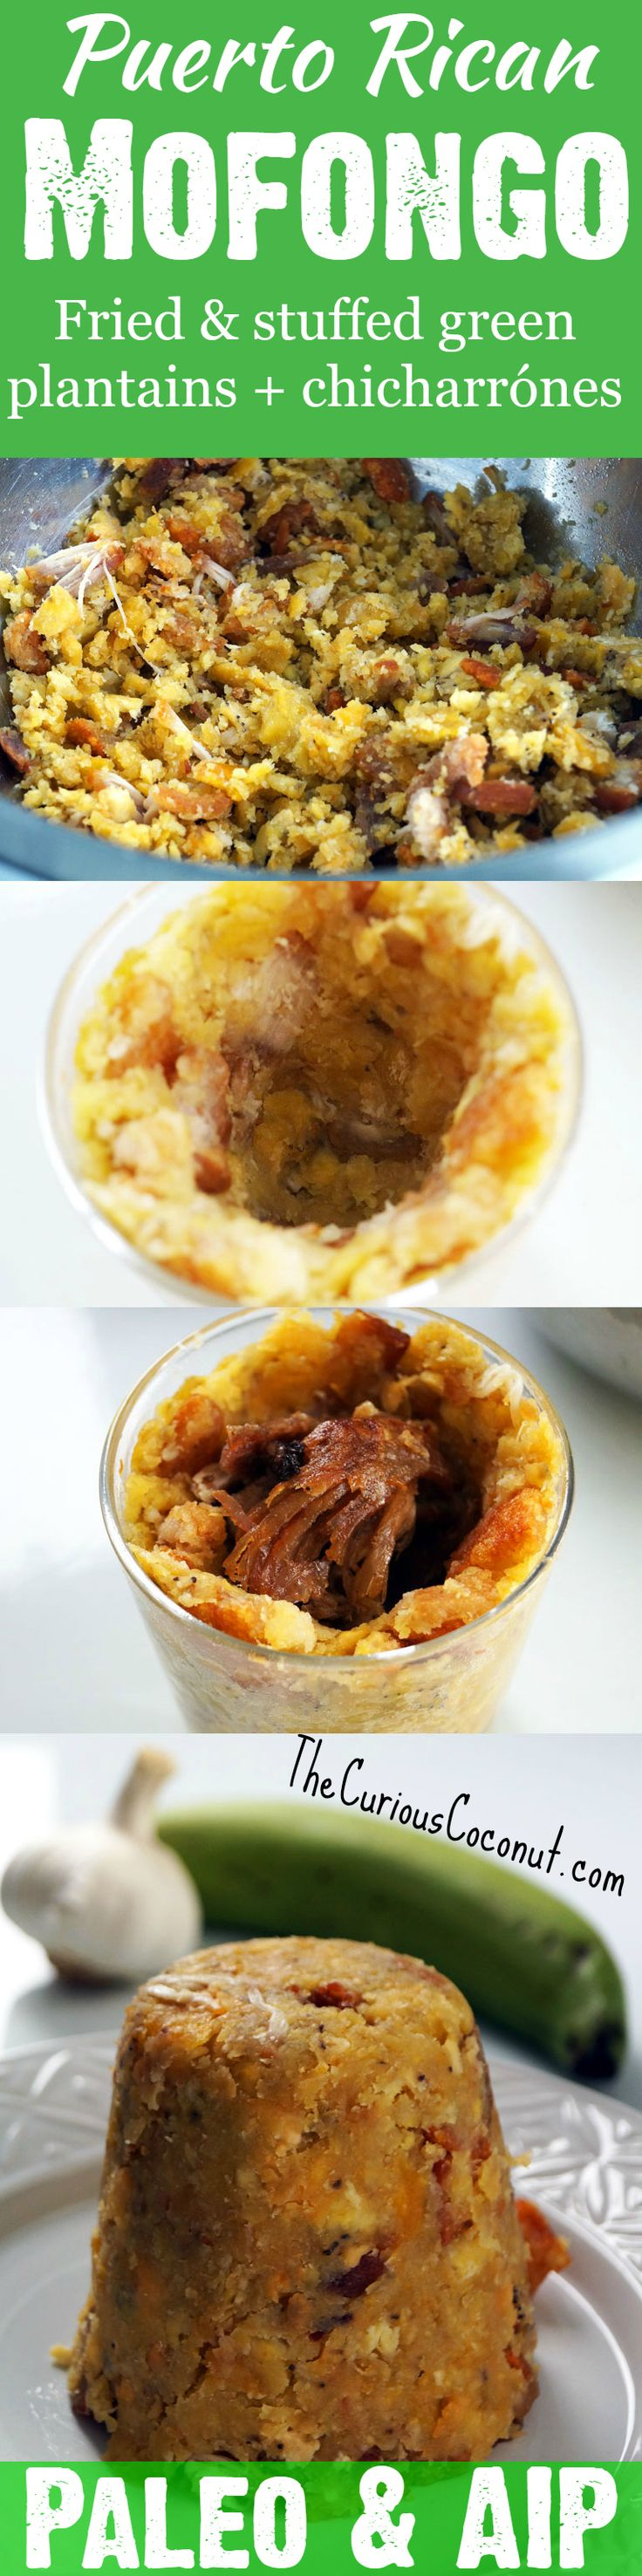 Puerto Rican Mofongo Relleno - Delicious fried green plantains with chicharrones or bacon stuffed wtih meat. A naturally Paleo and #AIP dish from an authentic family recipe! // TheCuriousCoconut.com